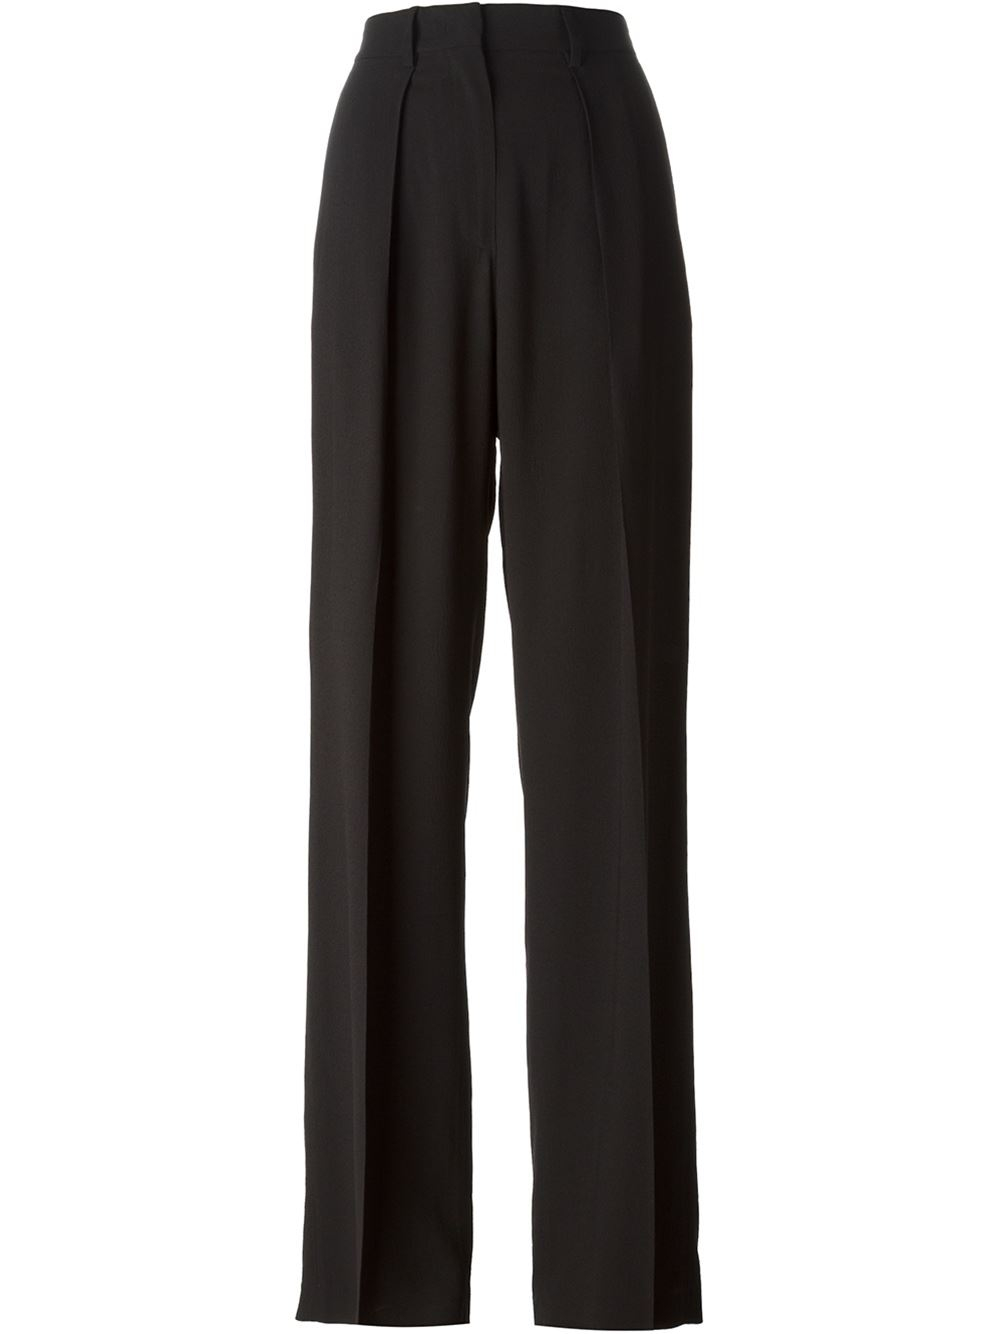 Wide Leg Trousers Take your style cues from the runways and opt for a pair of wide-leg trousers this season. From voluminous high-waisted palazzo pants to casual-cool culottes and petite lengths, our silhouettes will look great with both heels and flats.